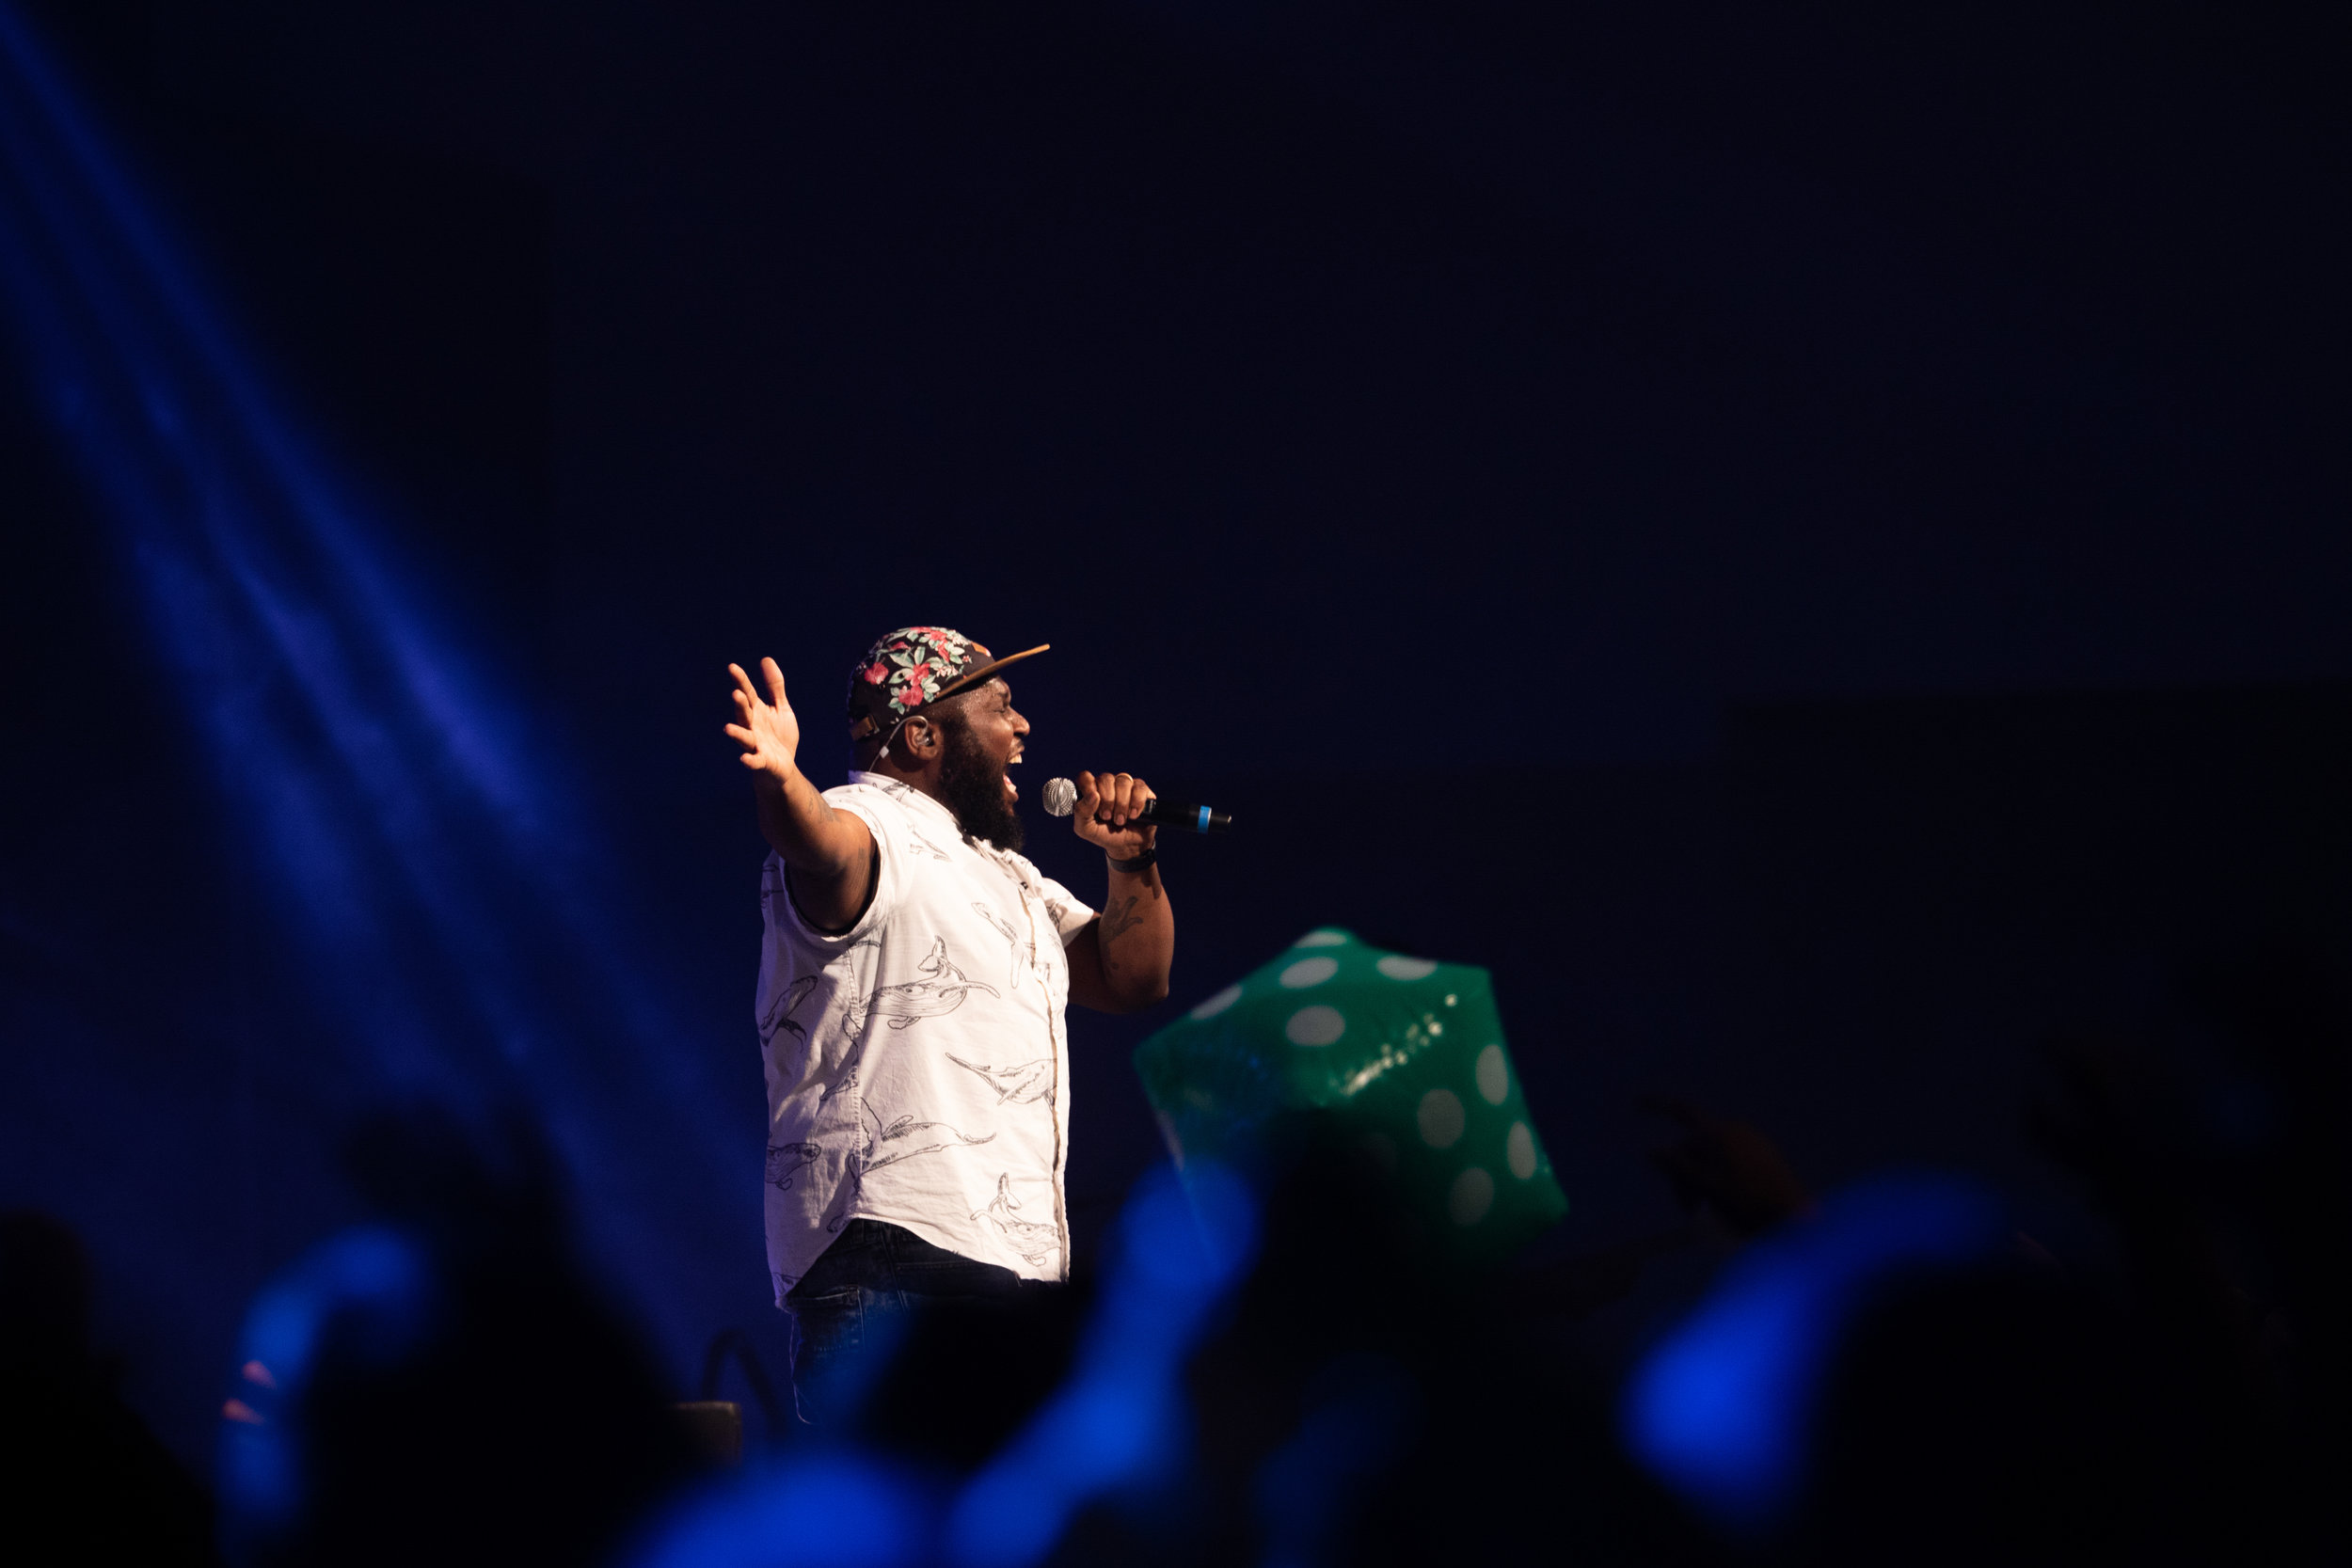 Ike Ndolo performs at Steubenville Lone Star on June 22, 2018 at the Irving Convention Center.